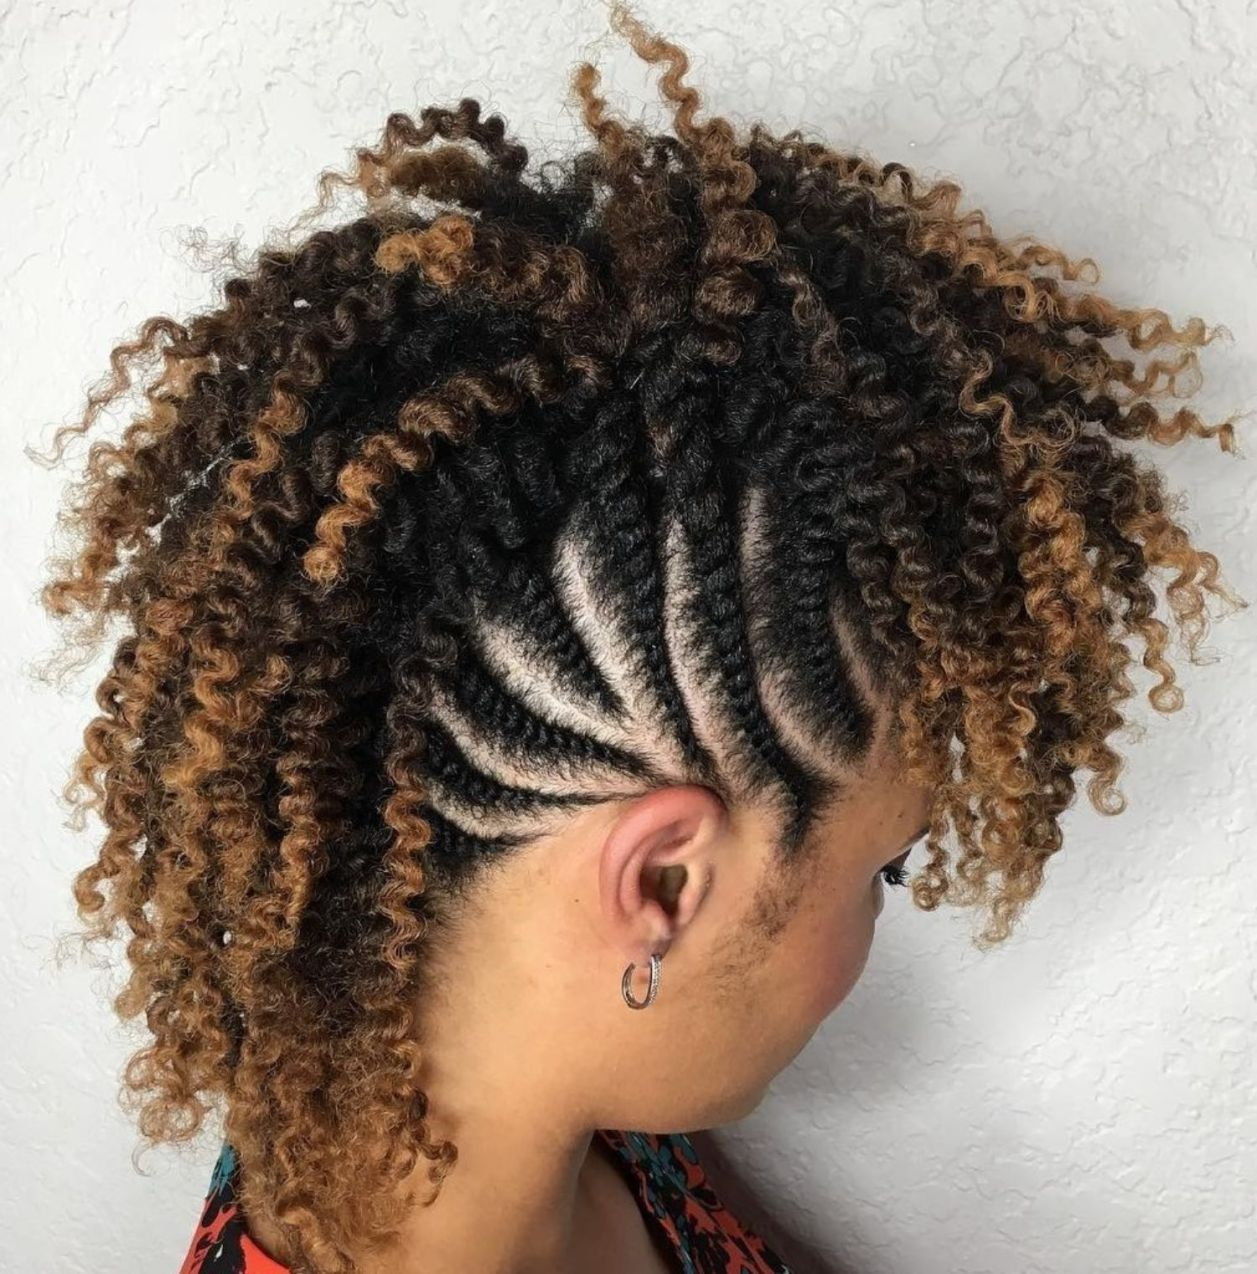 Pin on Braids to try